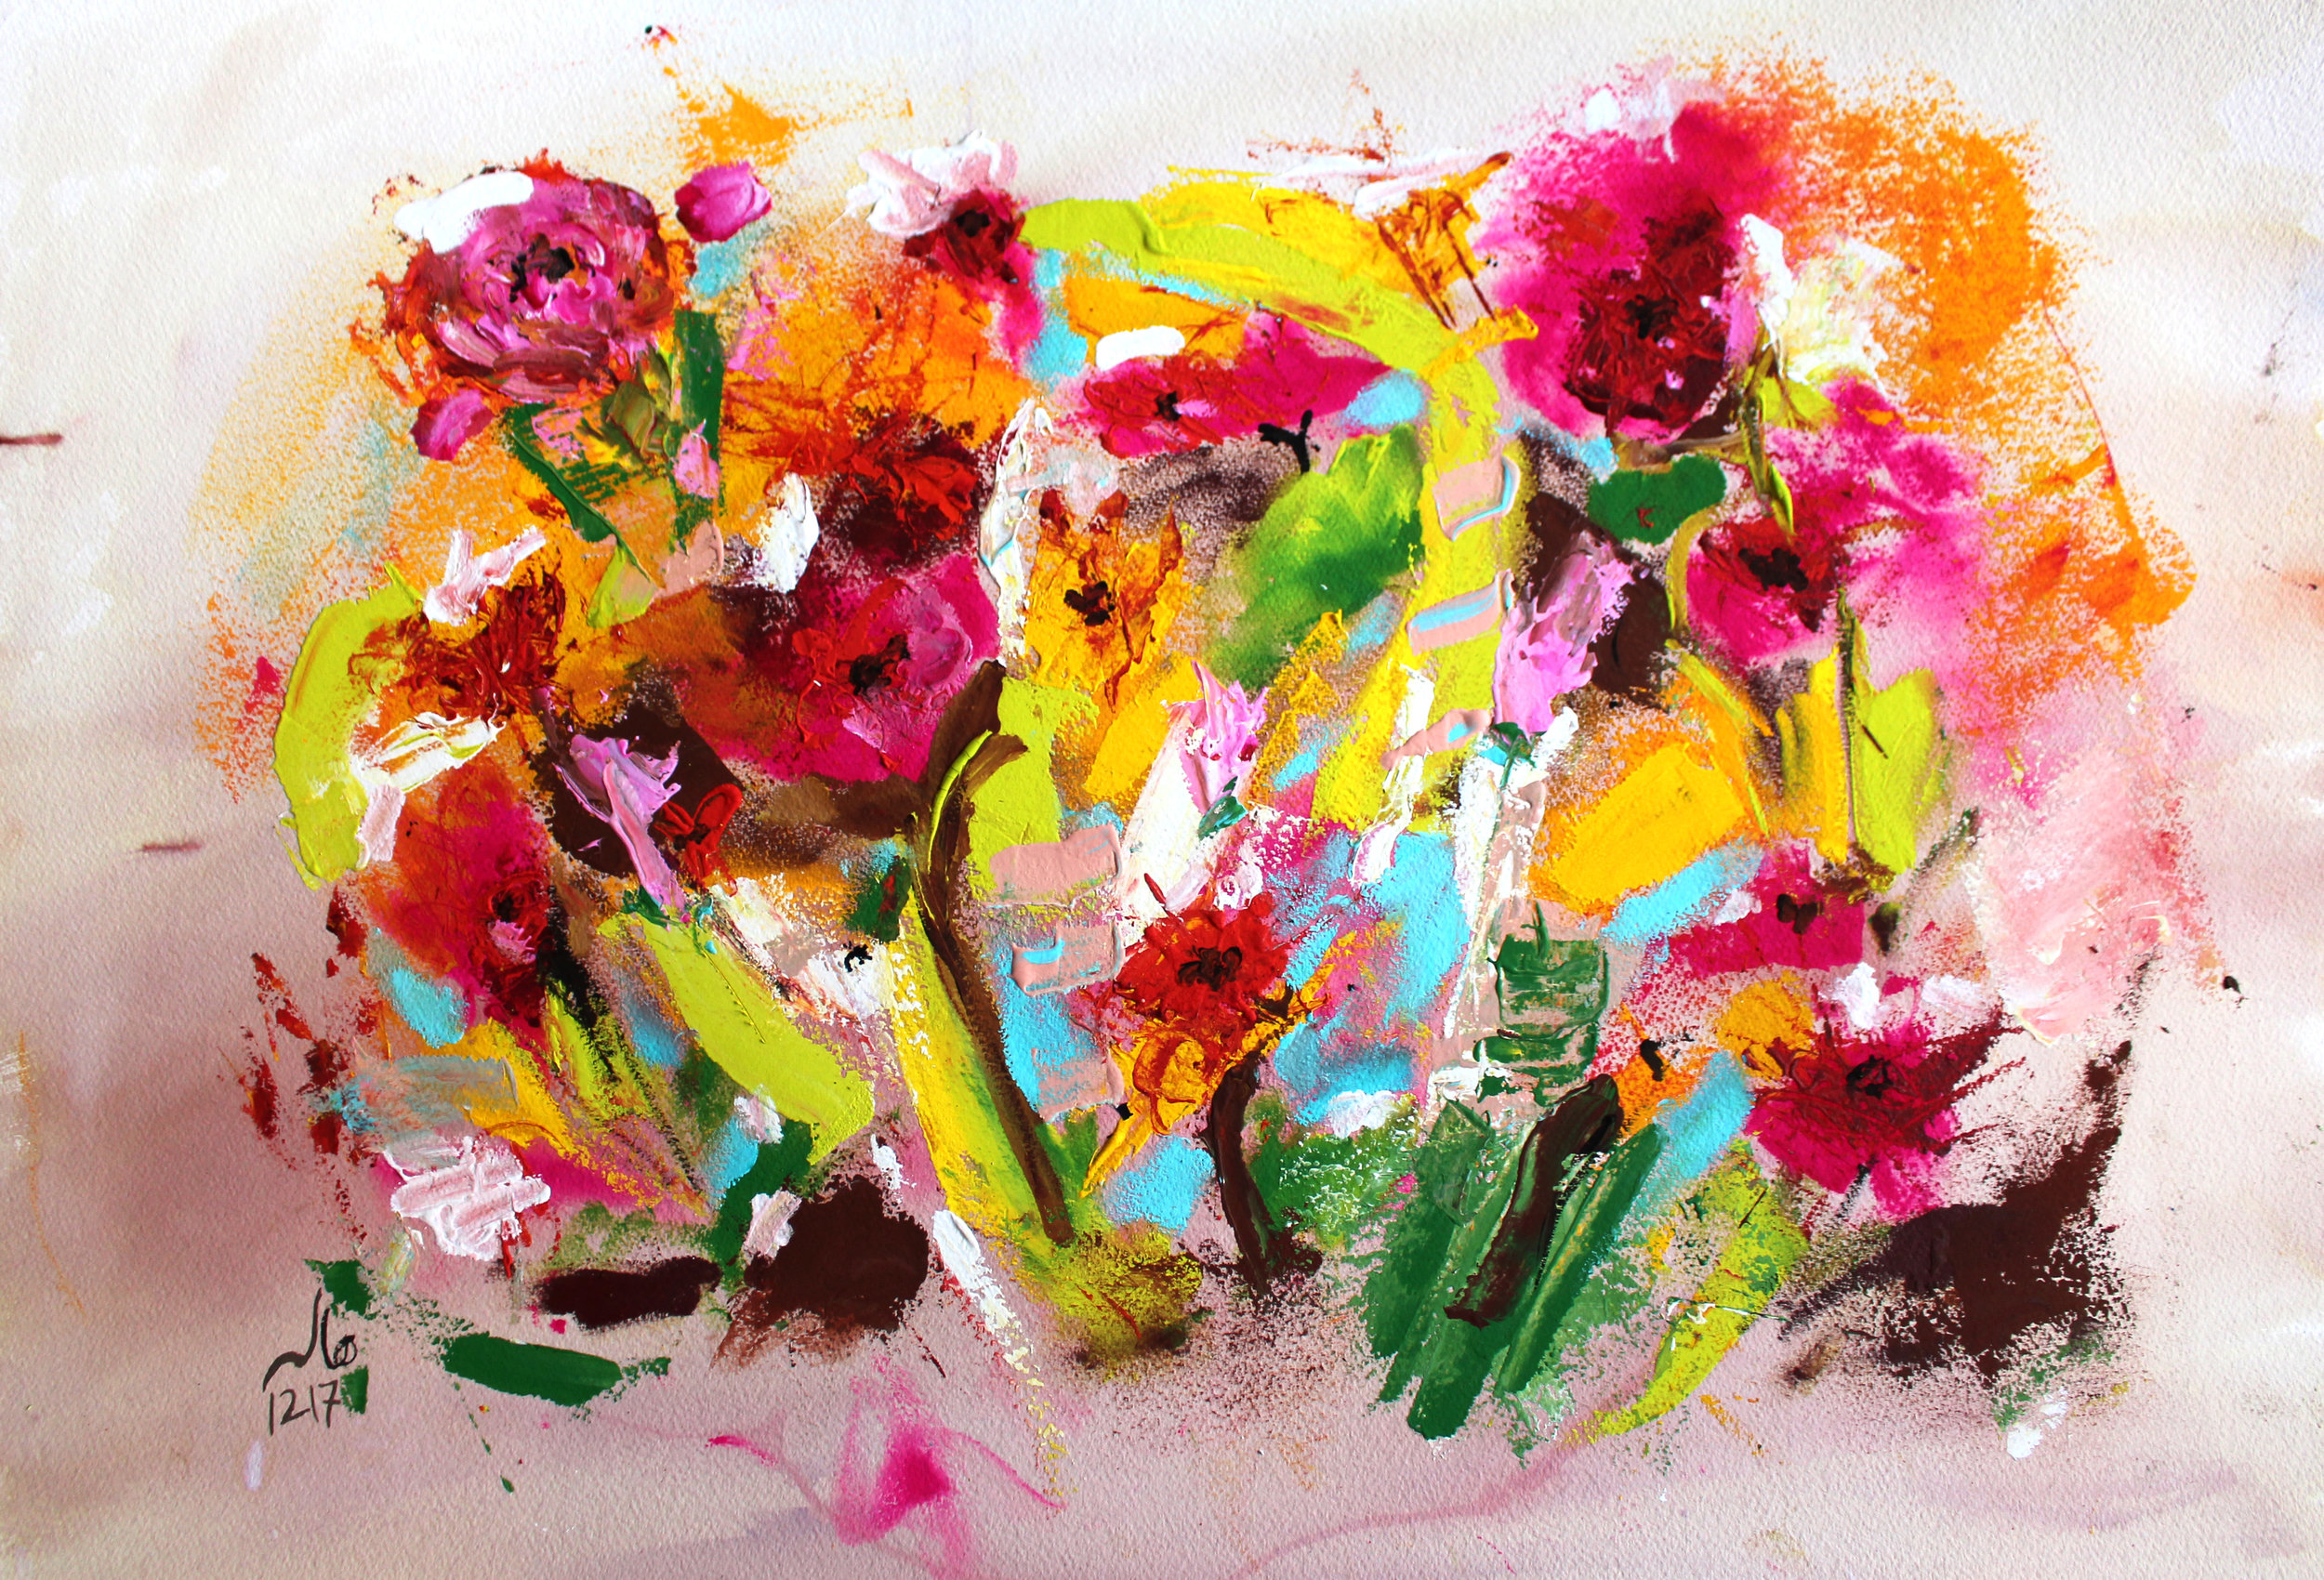 Flowers under the snow, 2017 - SOLD